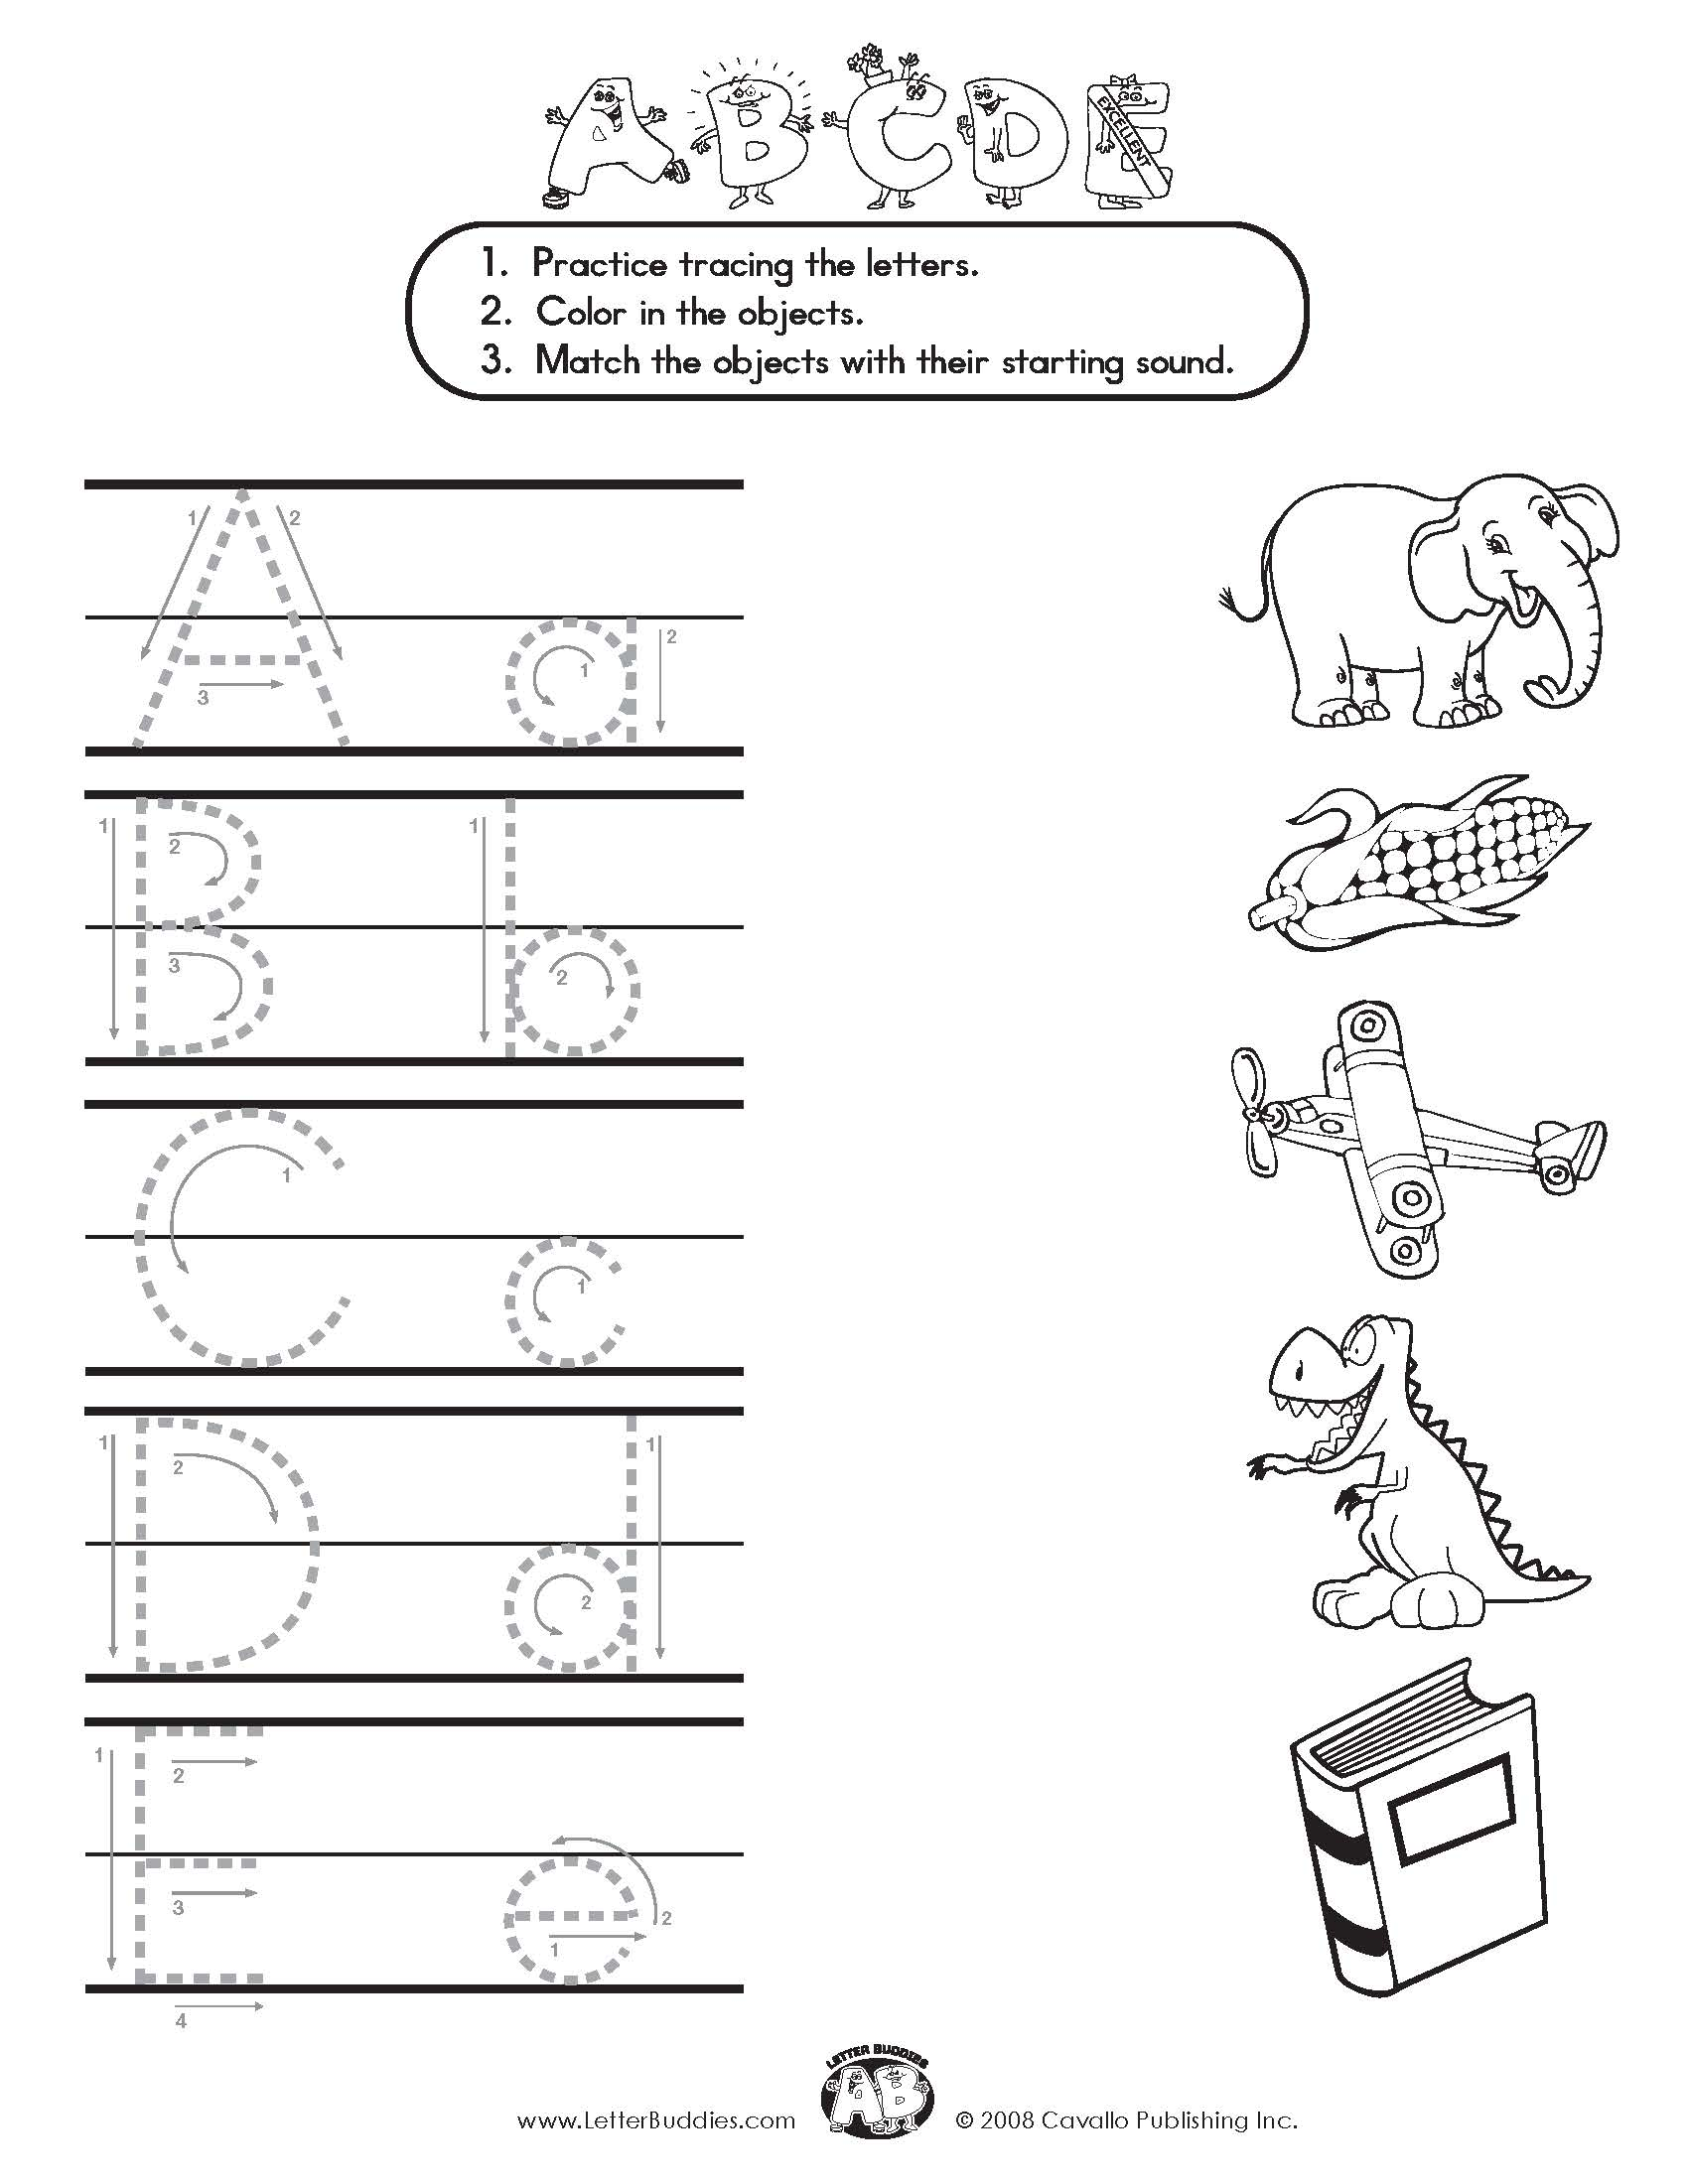 Worksheet Letter E Worksheets For Kindergarten Worksheet Fun Worksheet Study Site